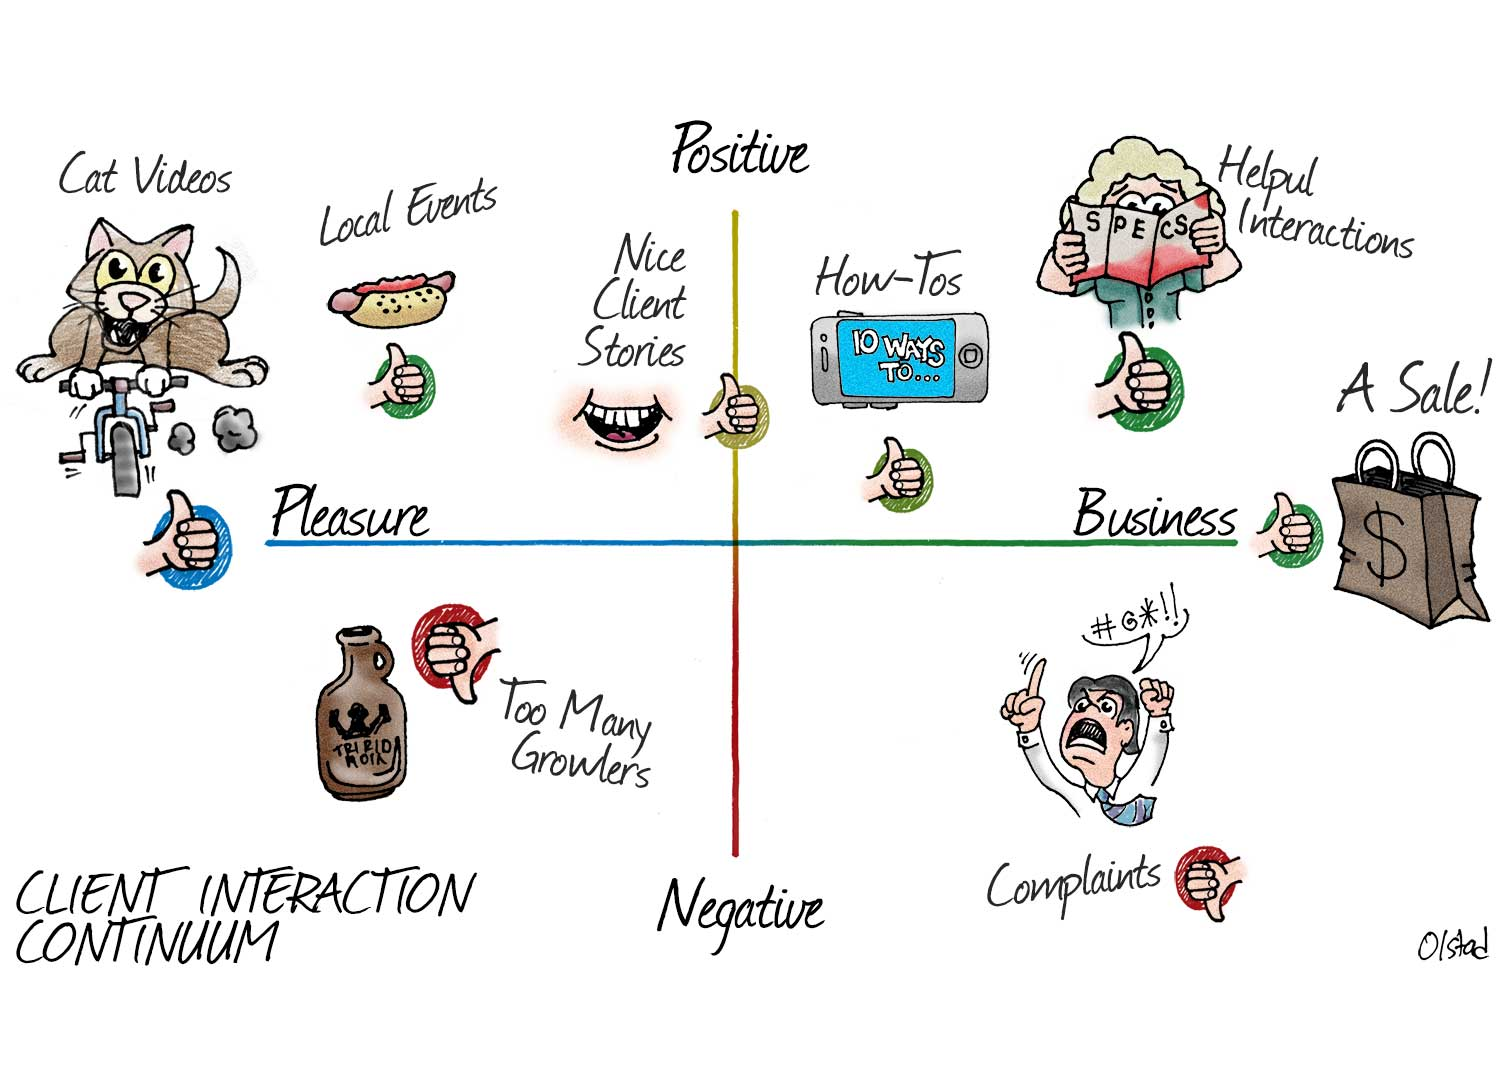 Client Interaction Continuum